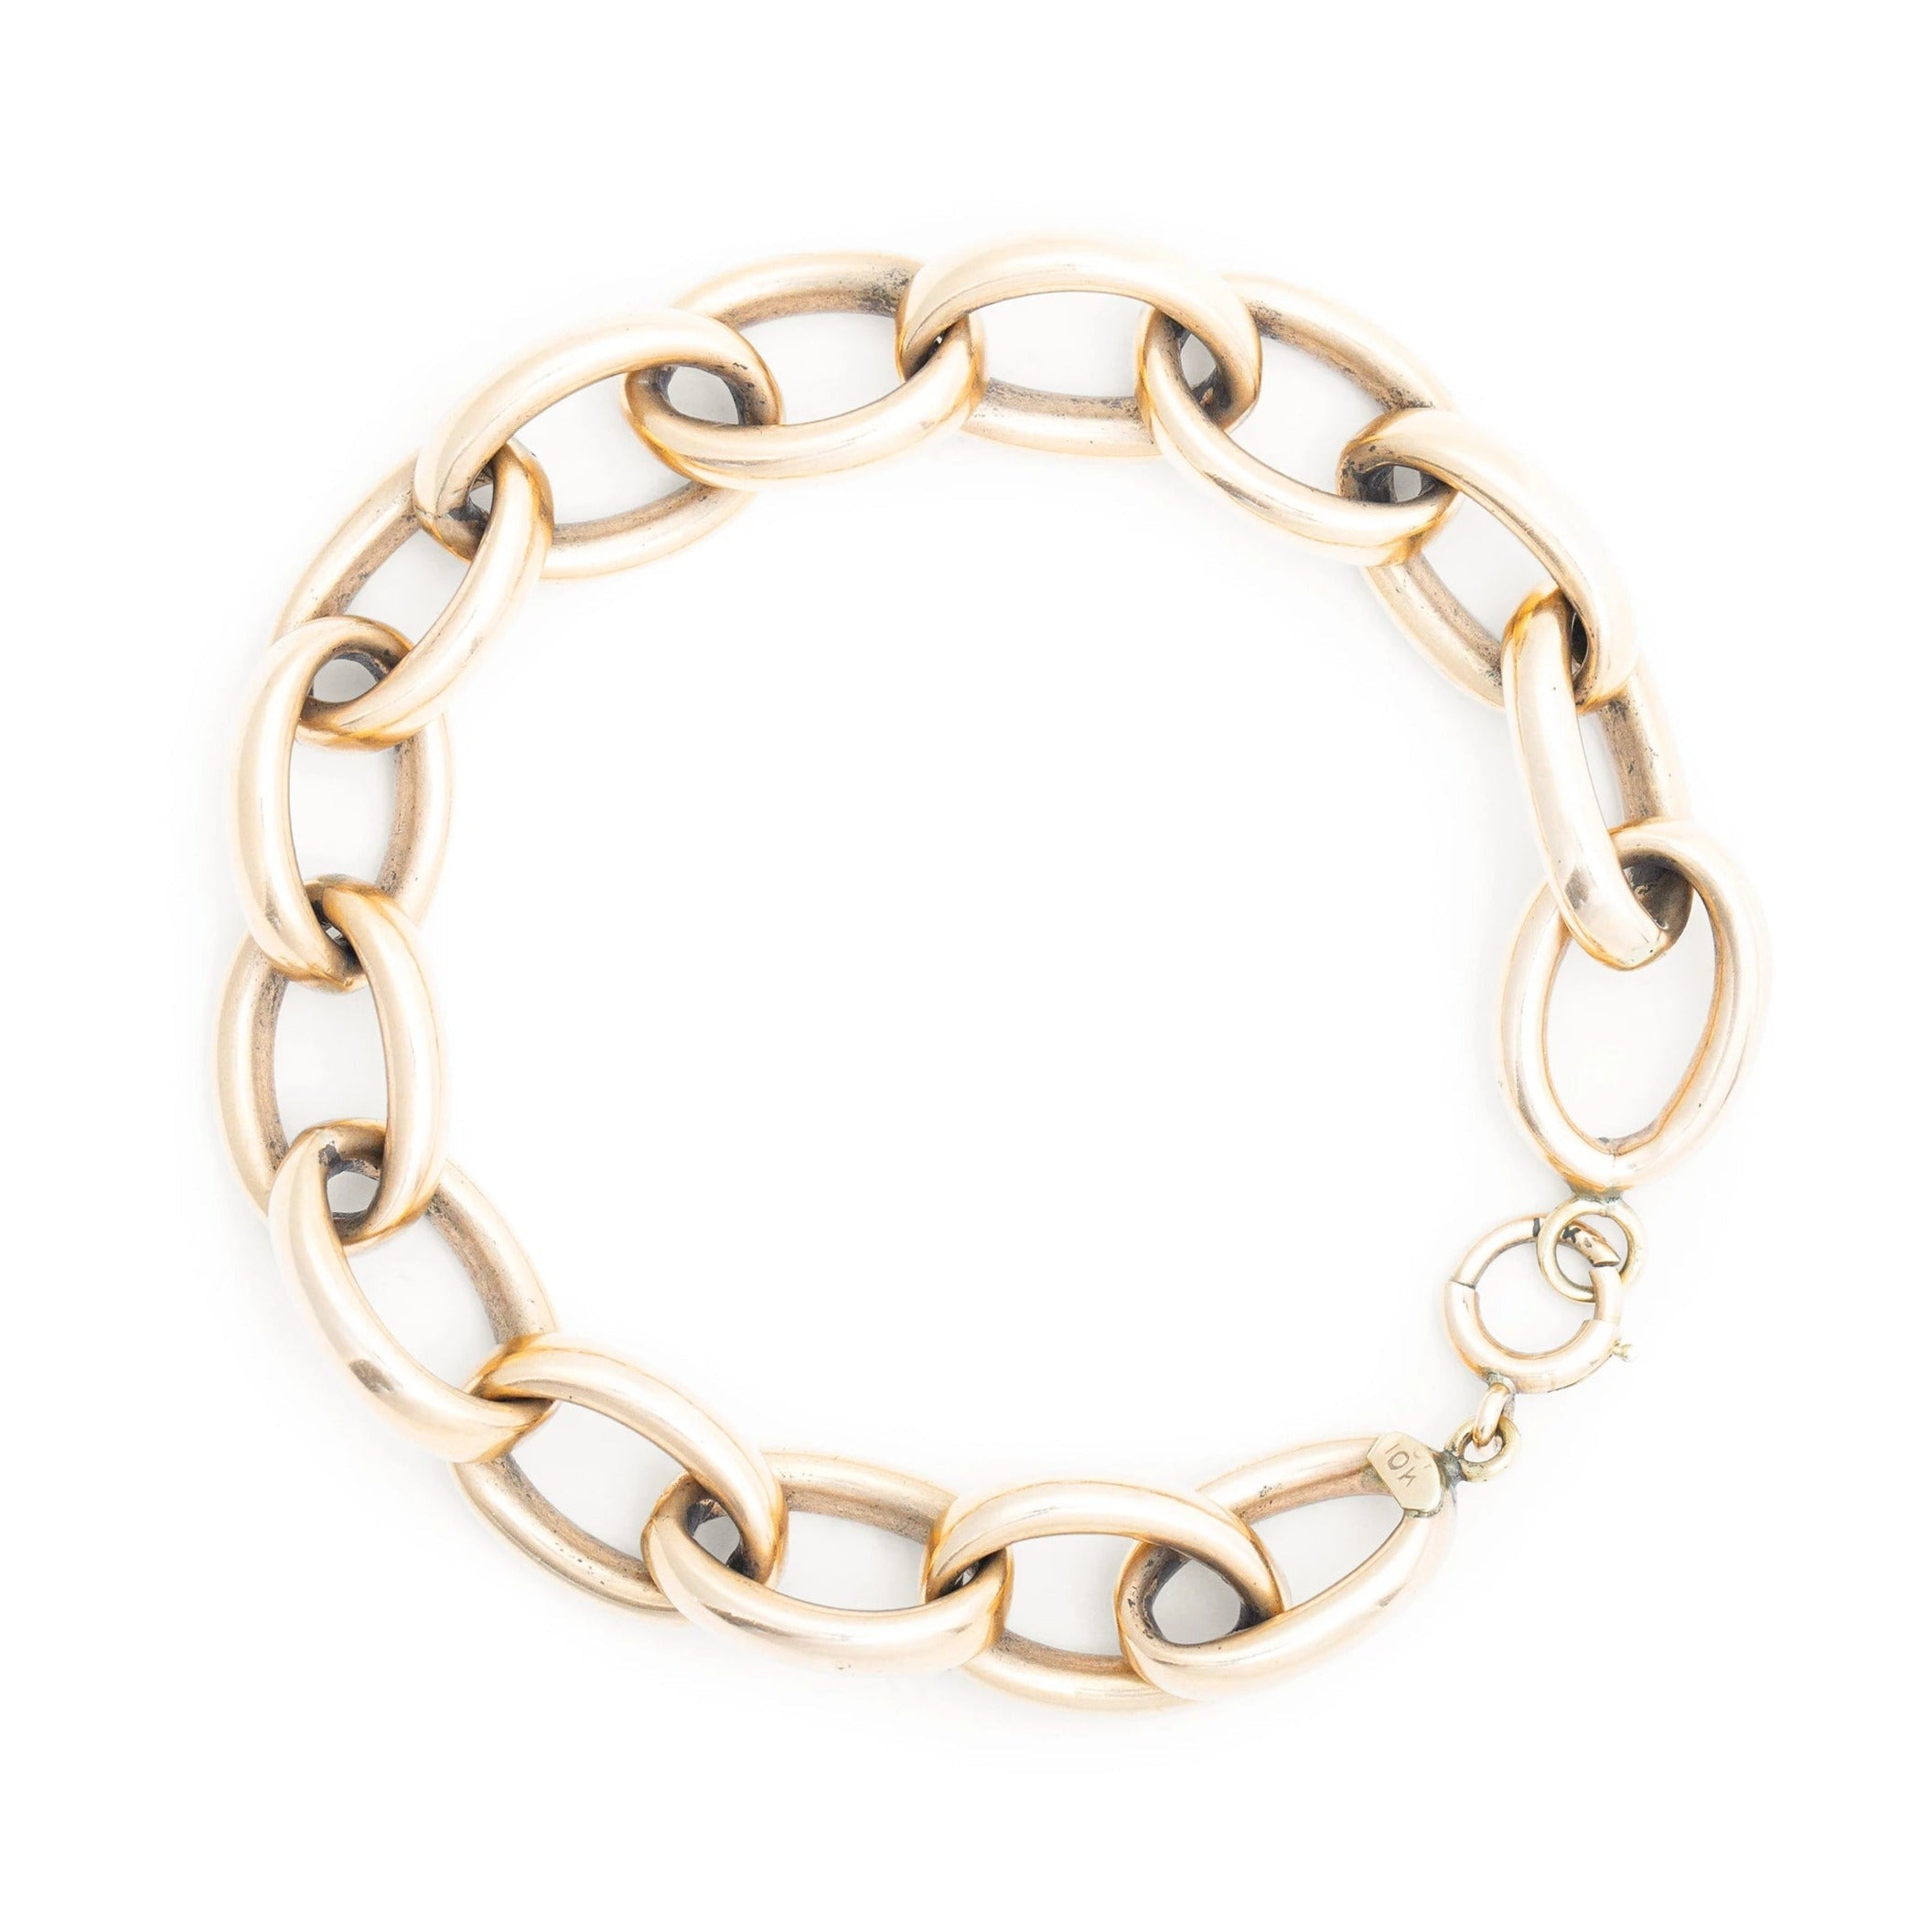 10k Rose Gold Open Link Bracelet